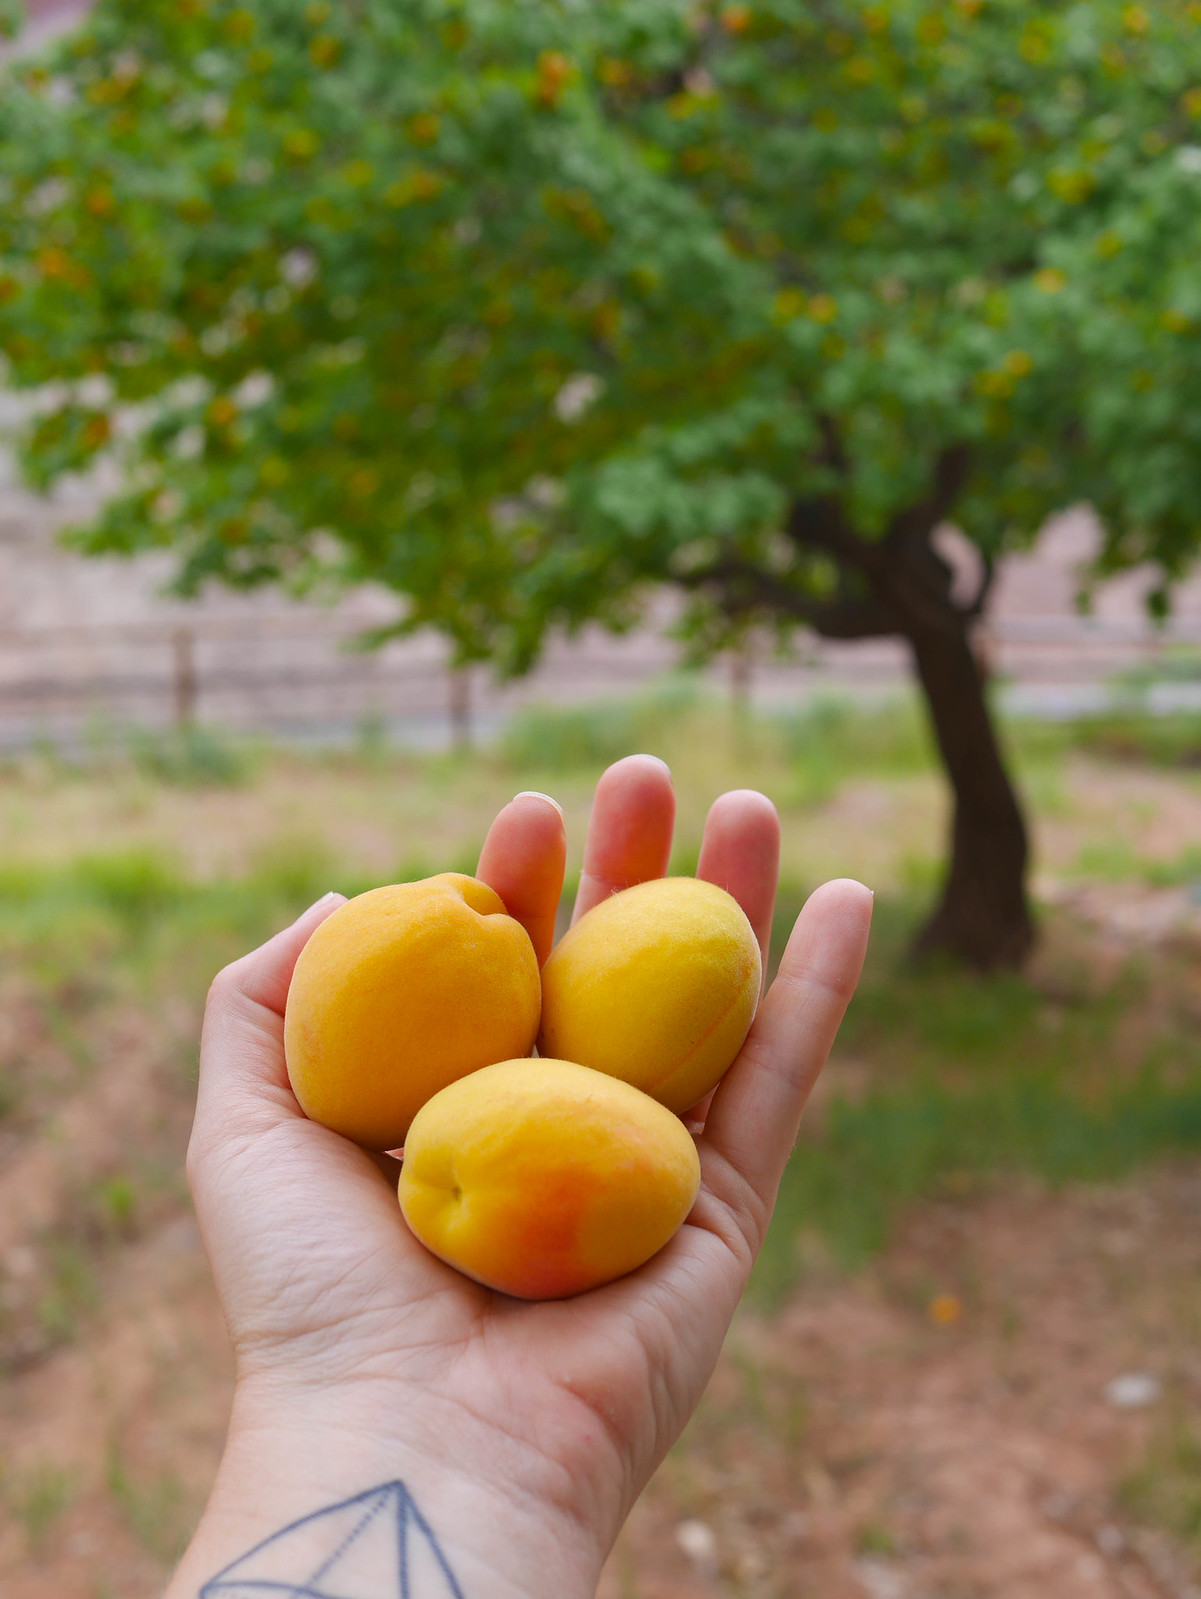 Picked some apricots in Fruita! Thanks Joe Smith